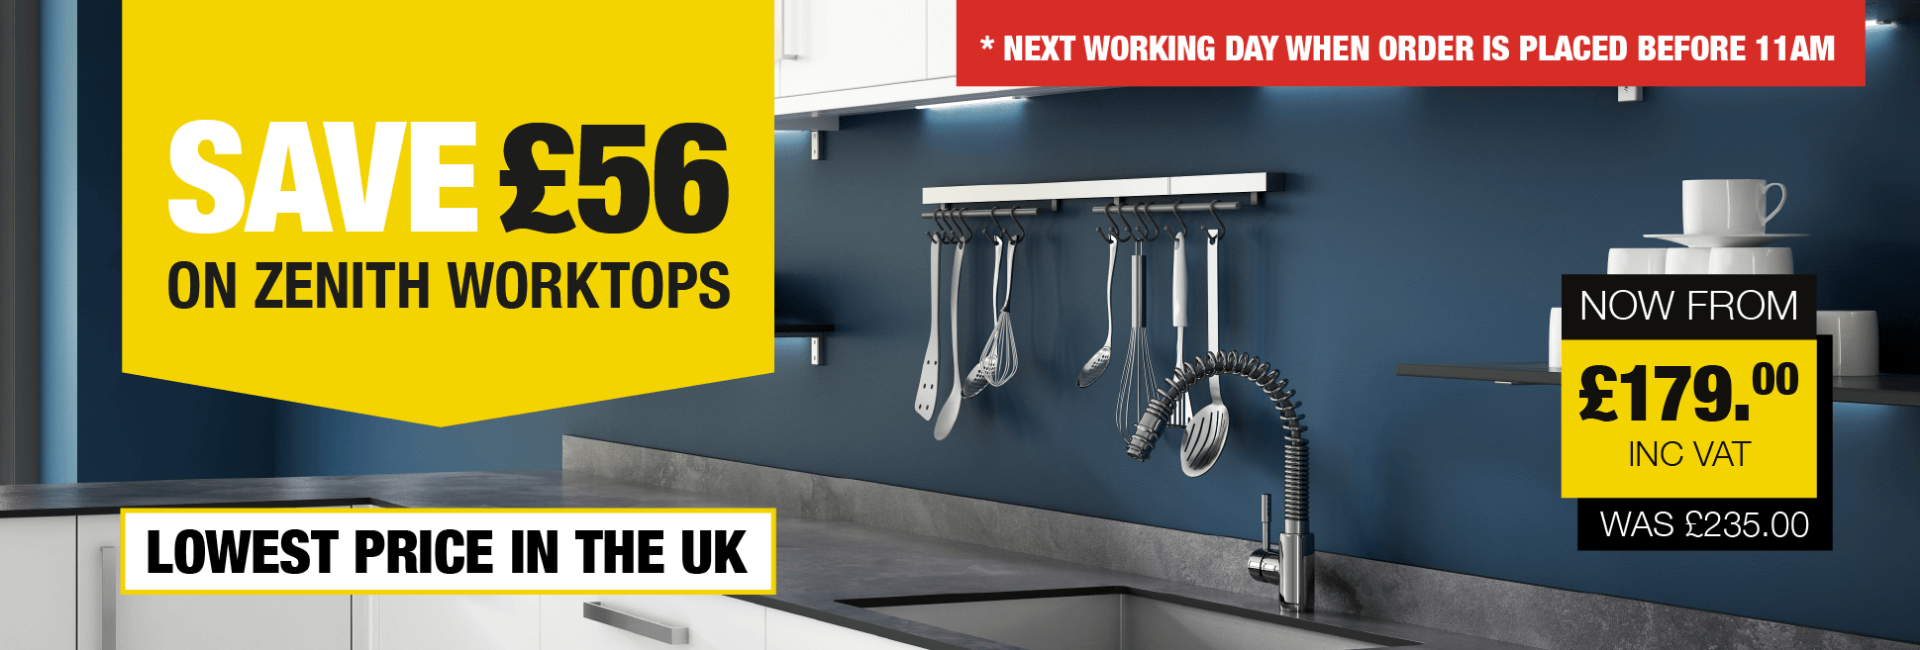 Save £56 on Zenith Worktops